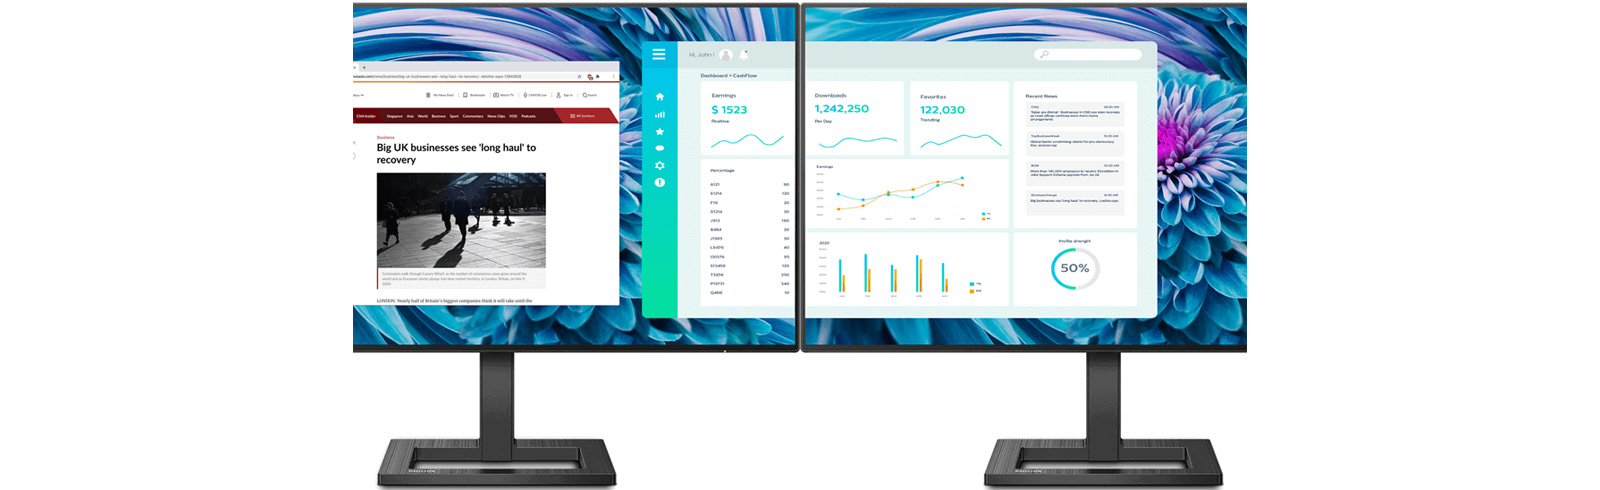 The Philips 275E2FAE arrives with CrystalClear QHD IPS display, 4-sided frameless design